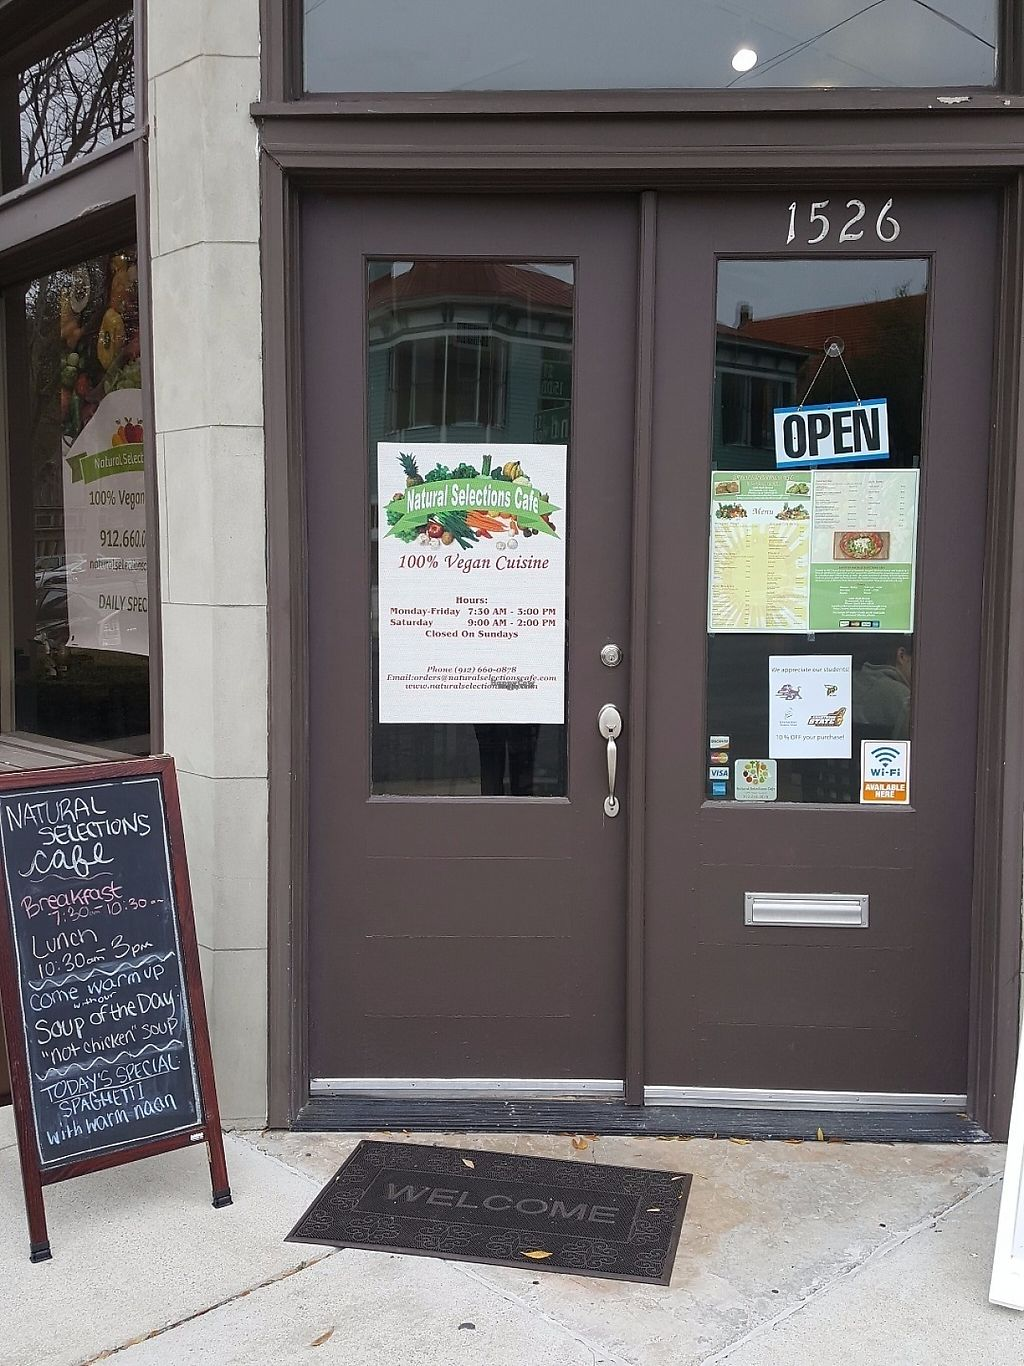 """Photo of Natural Selections Cafe  by <a href=""""/members/profile/DavidaHarris"""">DavidaHarris</a> <br/>1526 Bull street stop by and see us! <br/> March 13, 2017  - <a href='/contact/abuse/image/88434/235971'>Report</a>"""